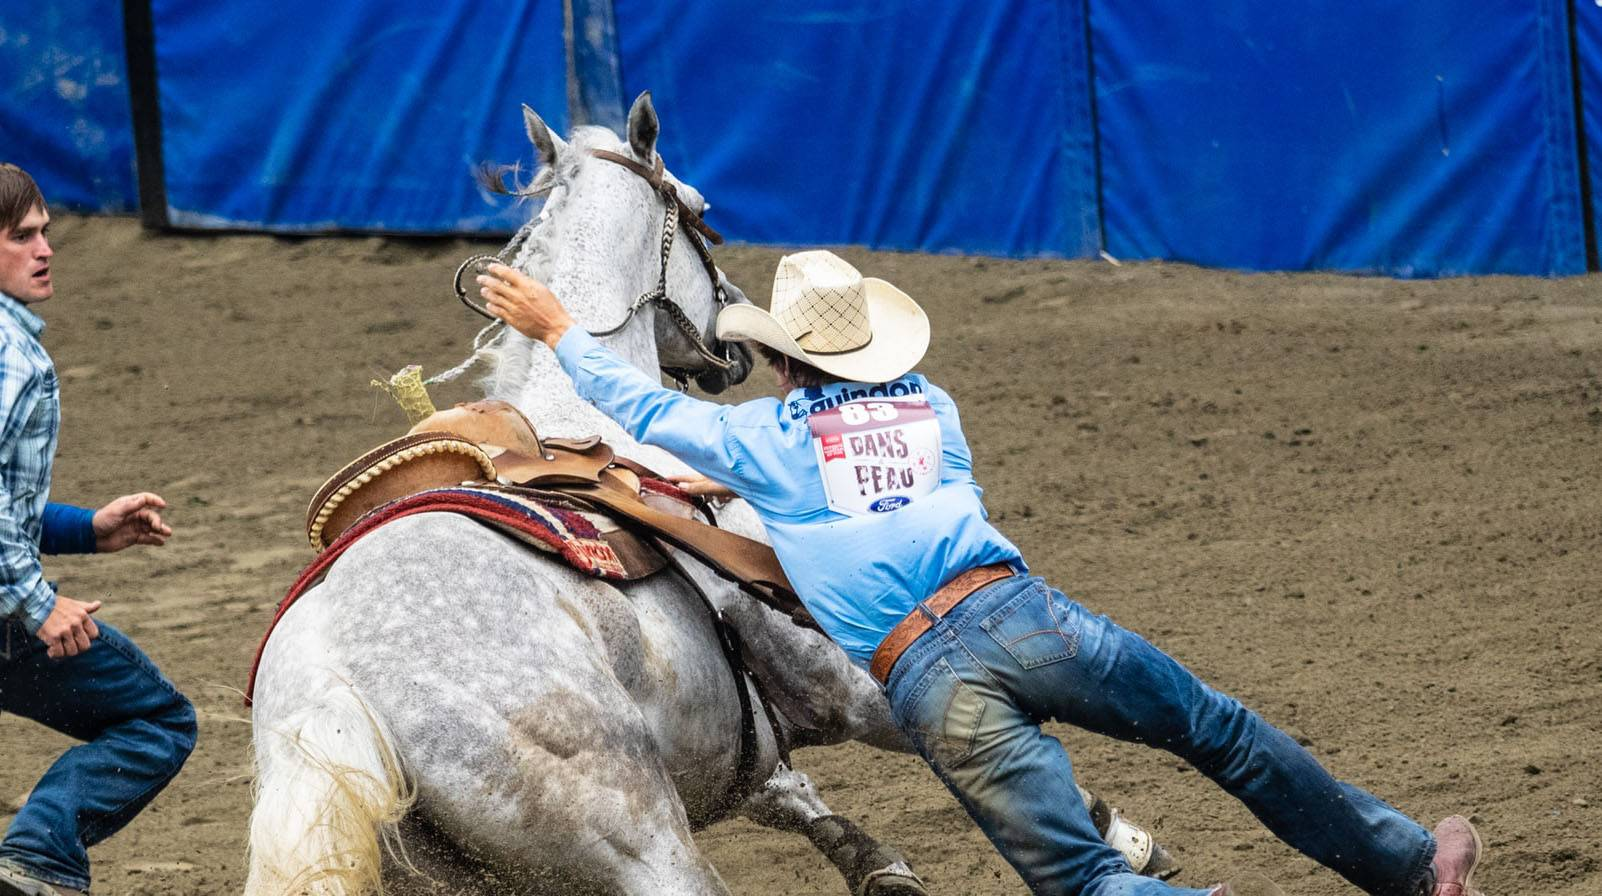 Caldwell Night Rodeo (Rescheduled from 8/21/2020)